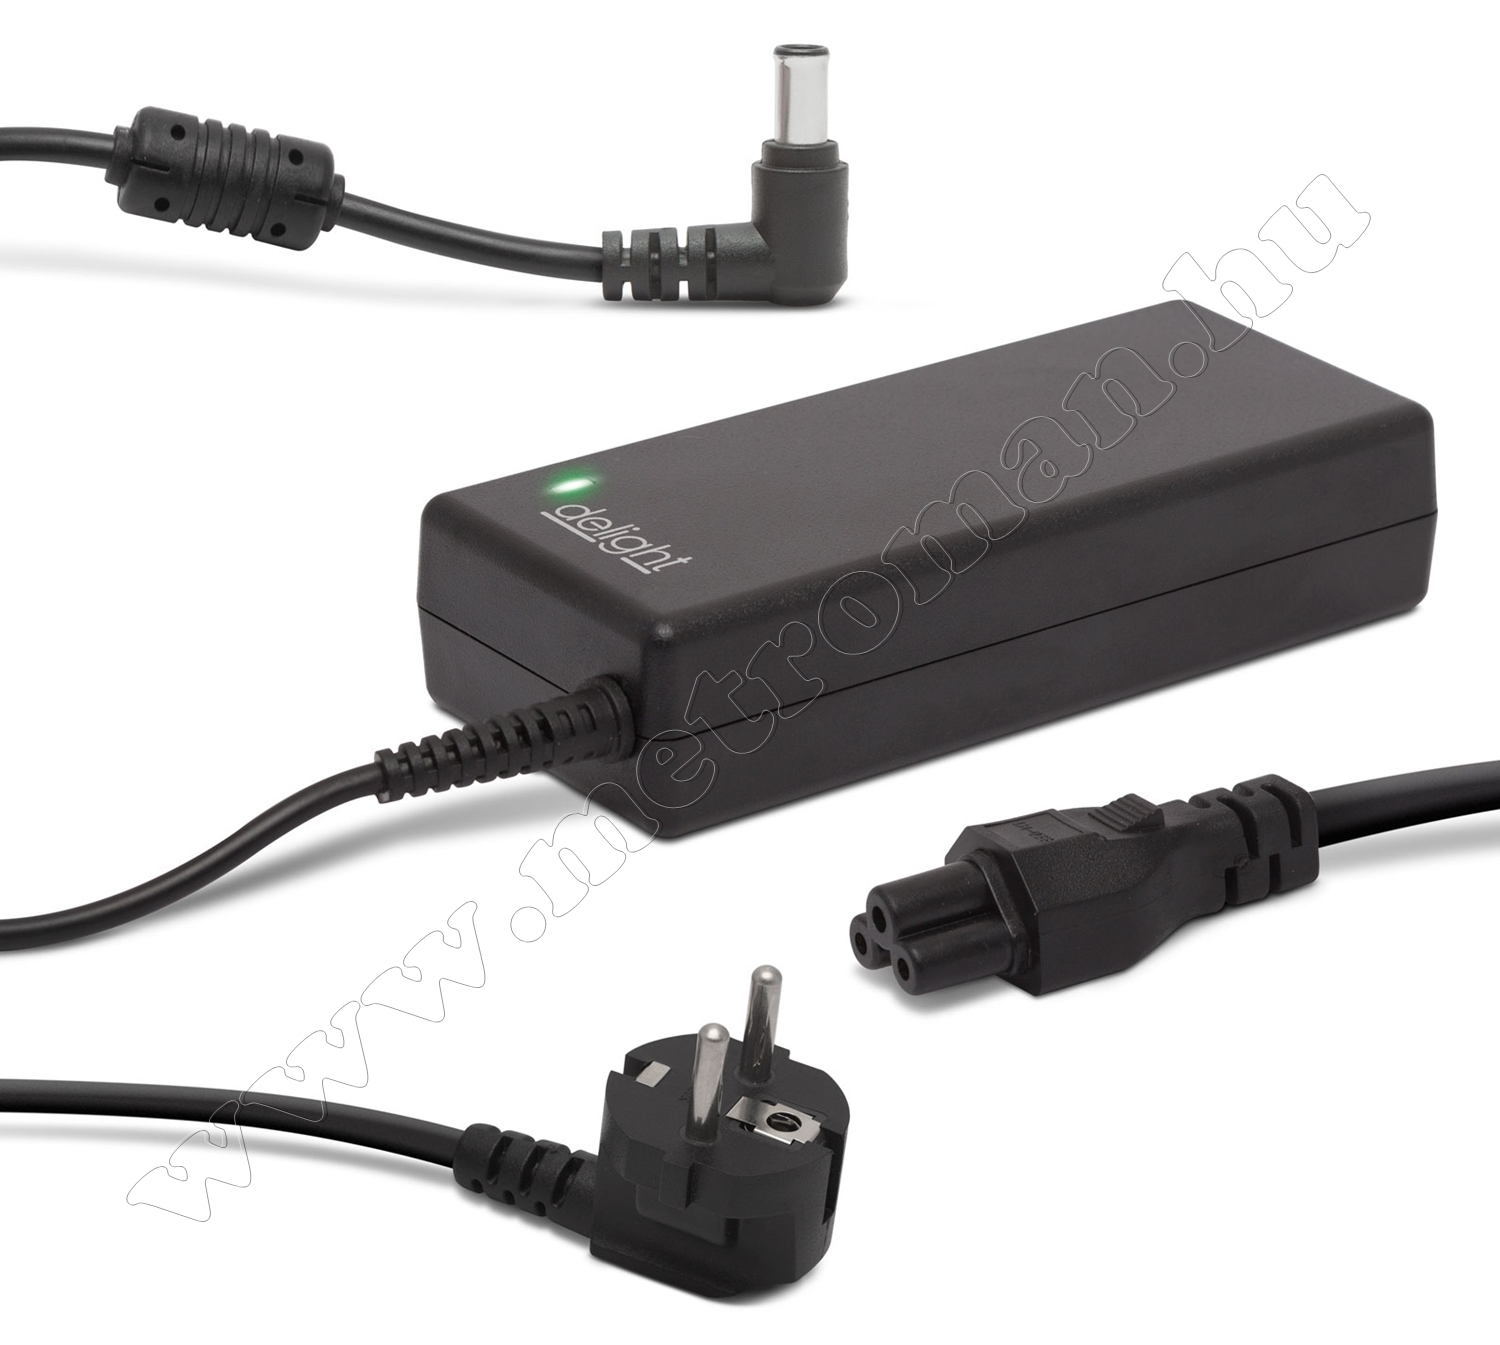 Sony laptop töltő, adapter 55372